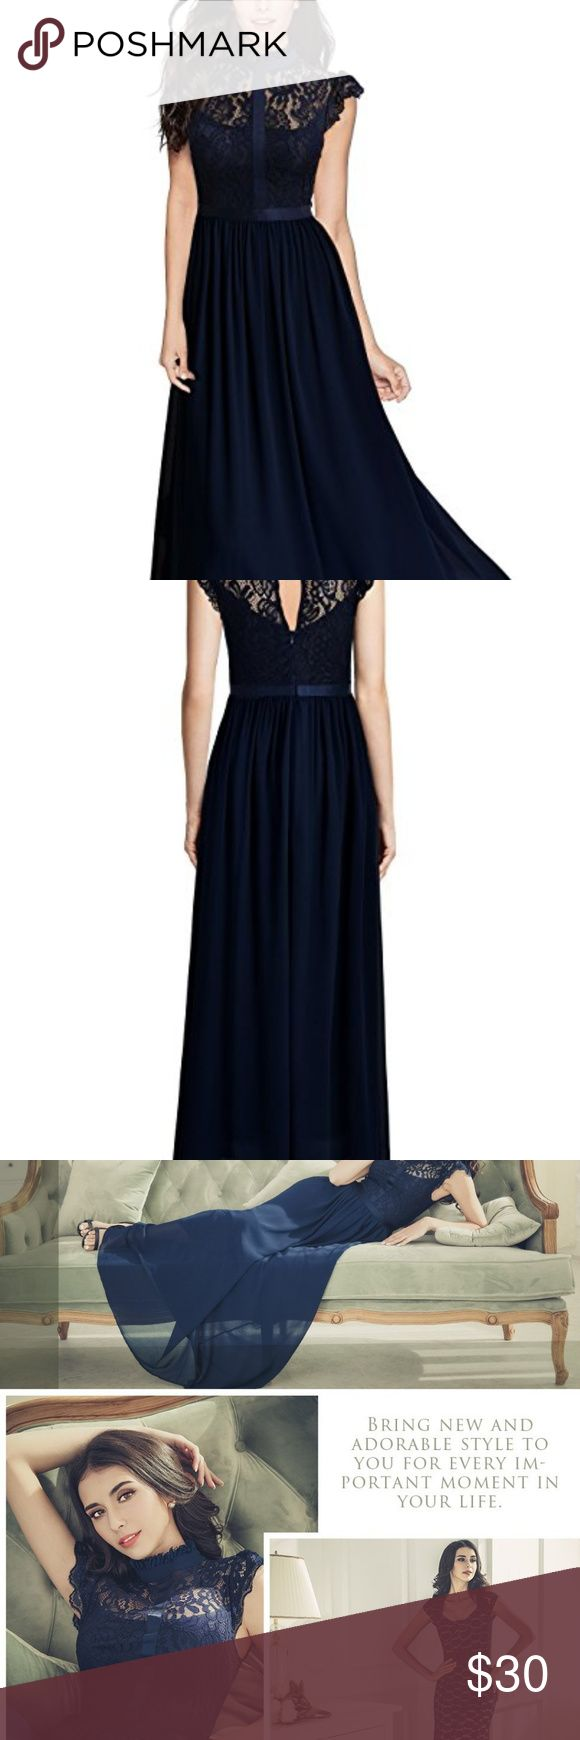 Women's Formal Floral Lace Cap Sleeve Evening Gown Gorgeous navy gown, worn once and in perfect condition. Received many compliments. Looks much higher quality than the original price indicates.  100% Polyester Elegant Half of high-collar,Cap Sleeve See-Through Lace Design,Contrast Different Fabric Vintage Formal style, Maxi Dress Hand Wash Only,Do Not Iron Suit for Wedding Party, Evening Club, Prom Long dress, suitable for tall people, hemming, or just folding over.  More pics of people…